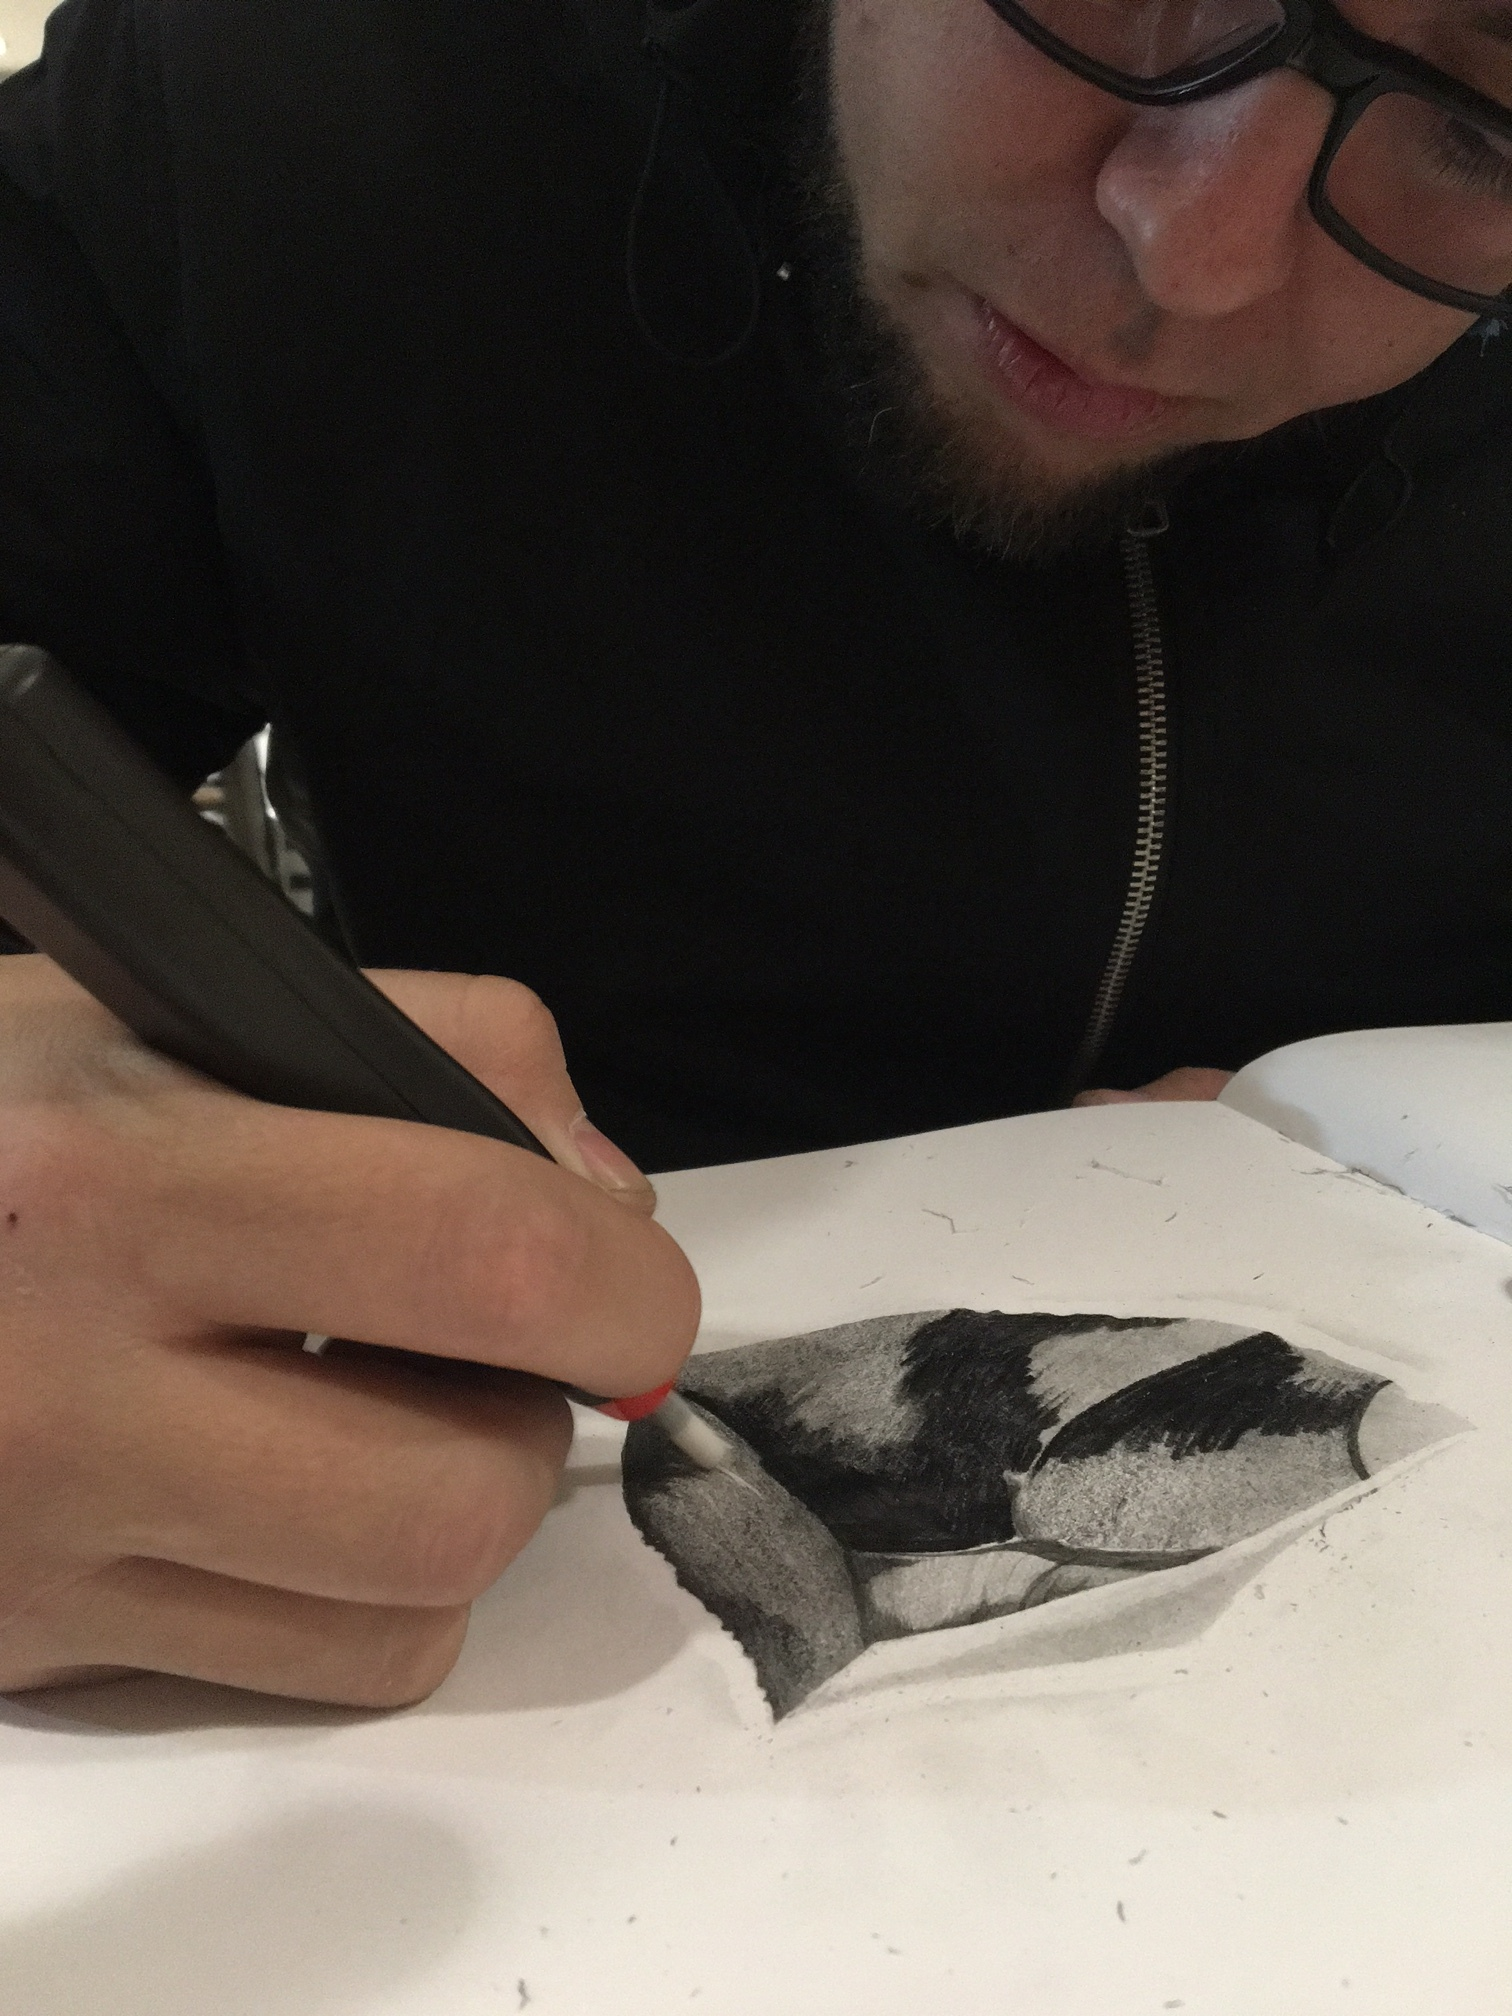 MIguel Machuca  sketching with a battery-operated eraser